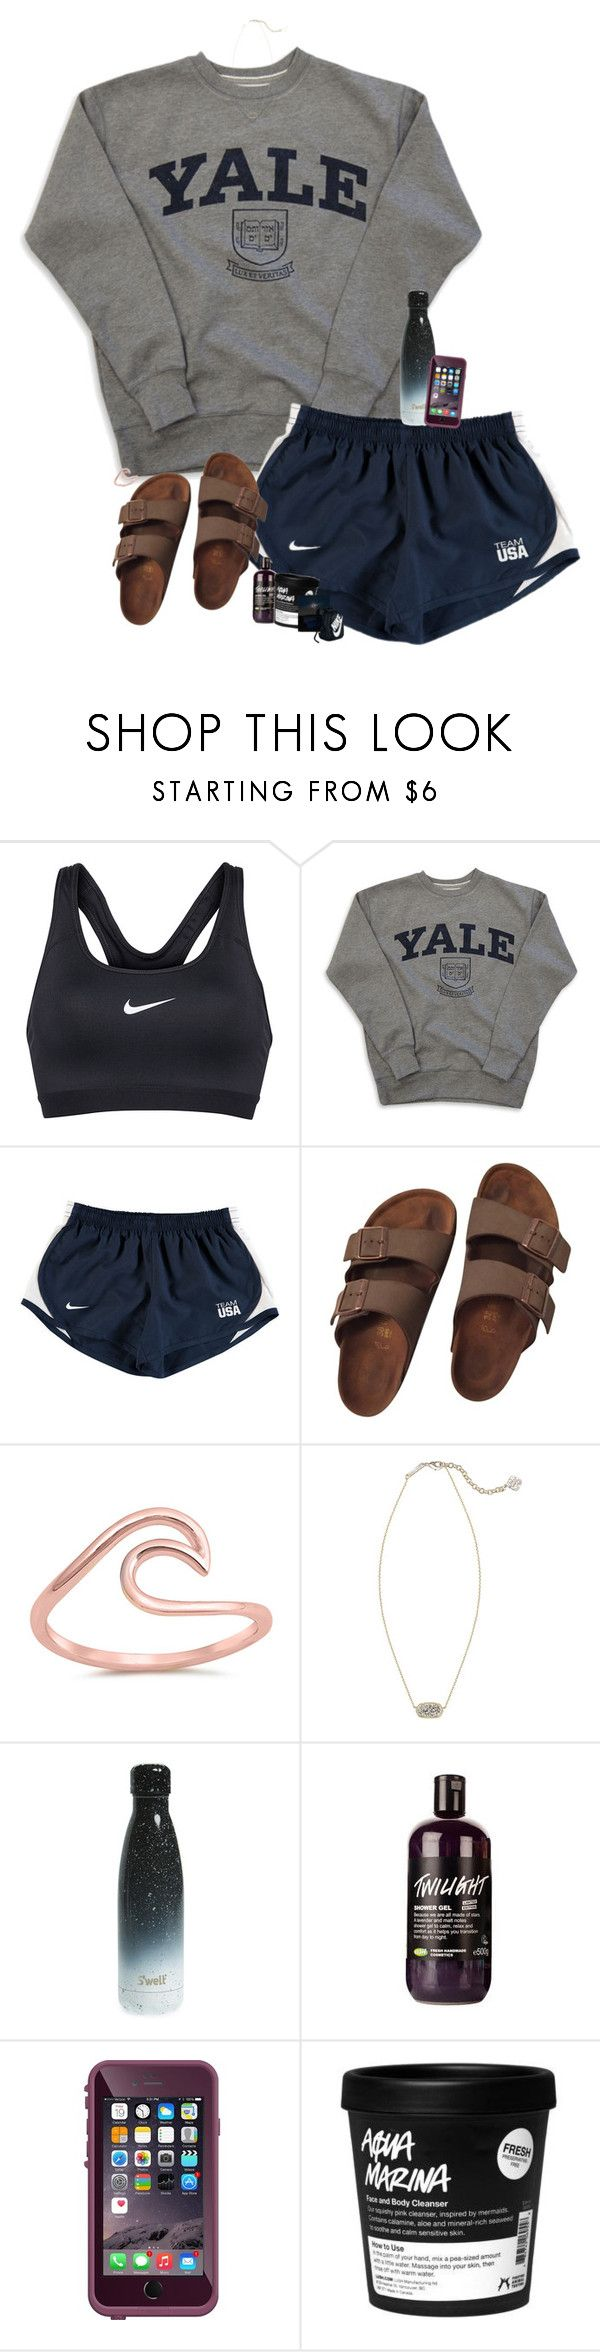 """Total eclipse today "" by halledaniella ❤ liked on Polyvore featuring NIKE, Birkenstock, Kendra Scott and S'well"